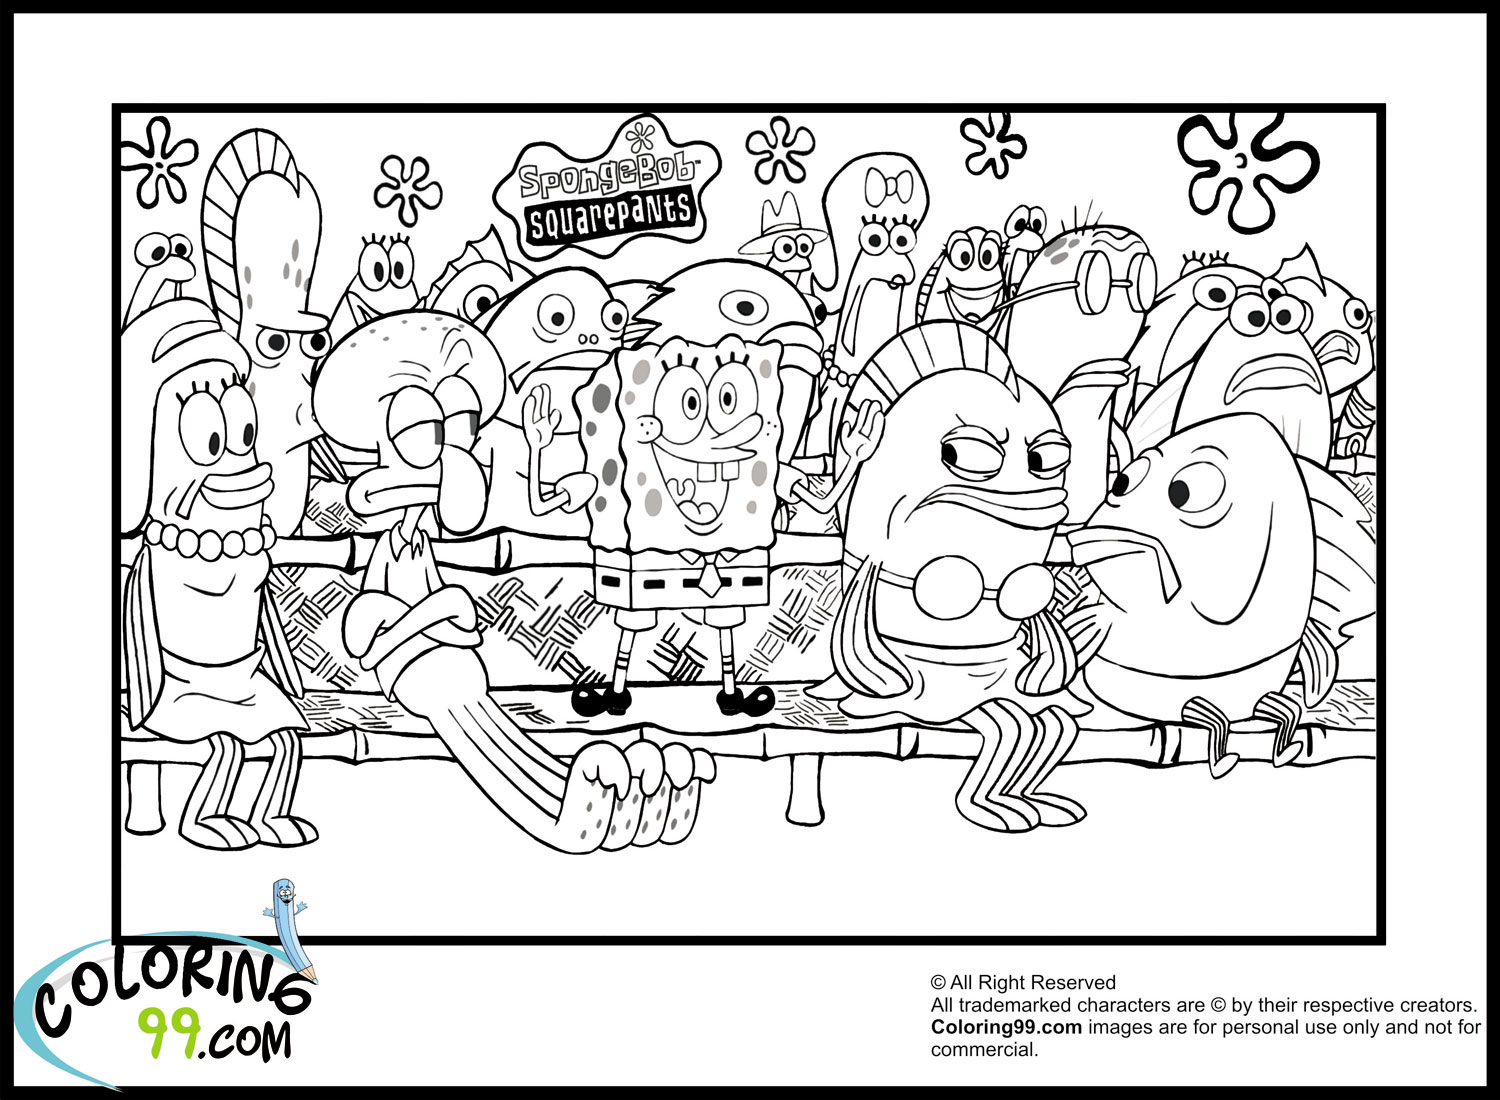 Spongebob Pineapple House Coloring Page Coloring Pages Spongebob Squarepants Characters Coloring Pages